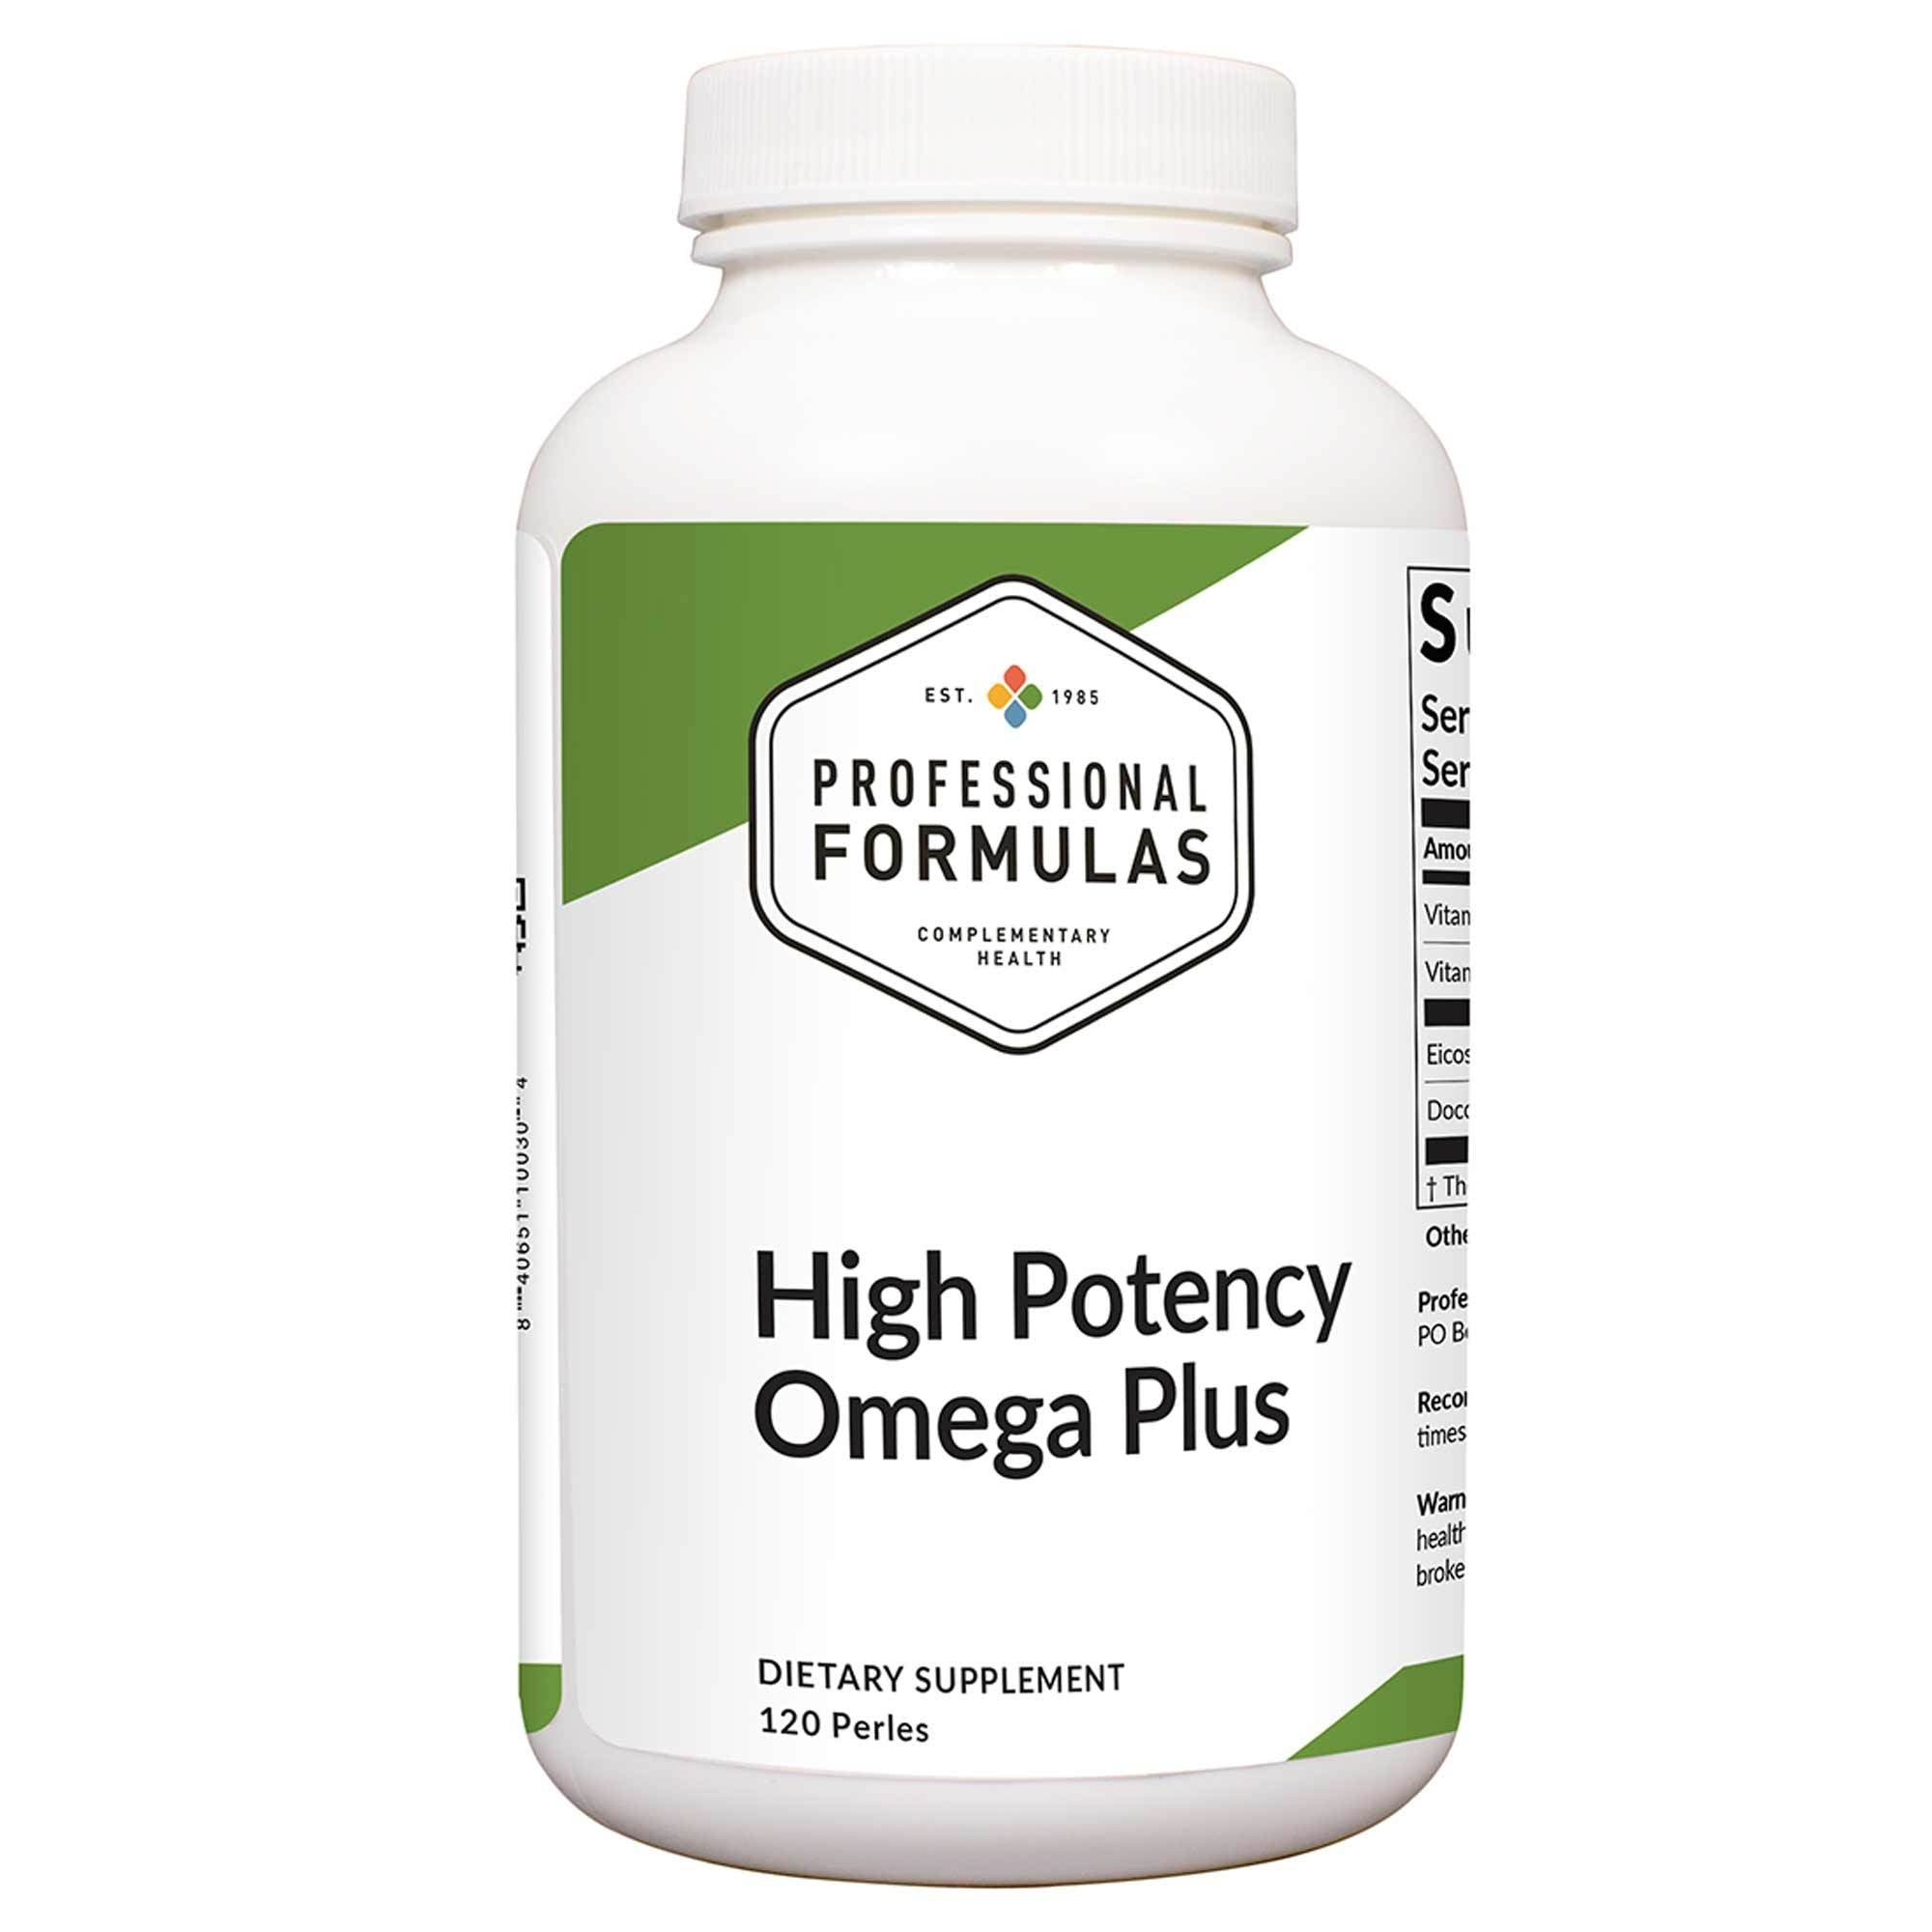 High Potency/Omega Plus 120 perles